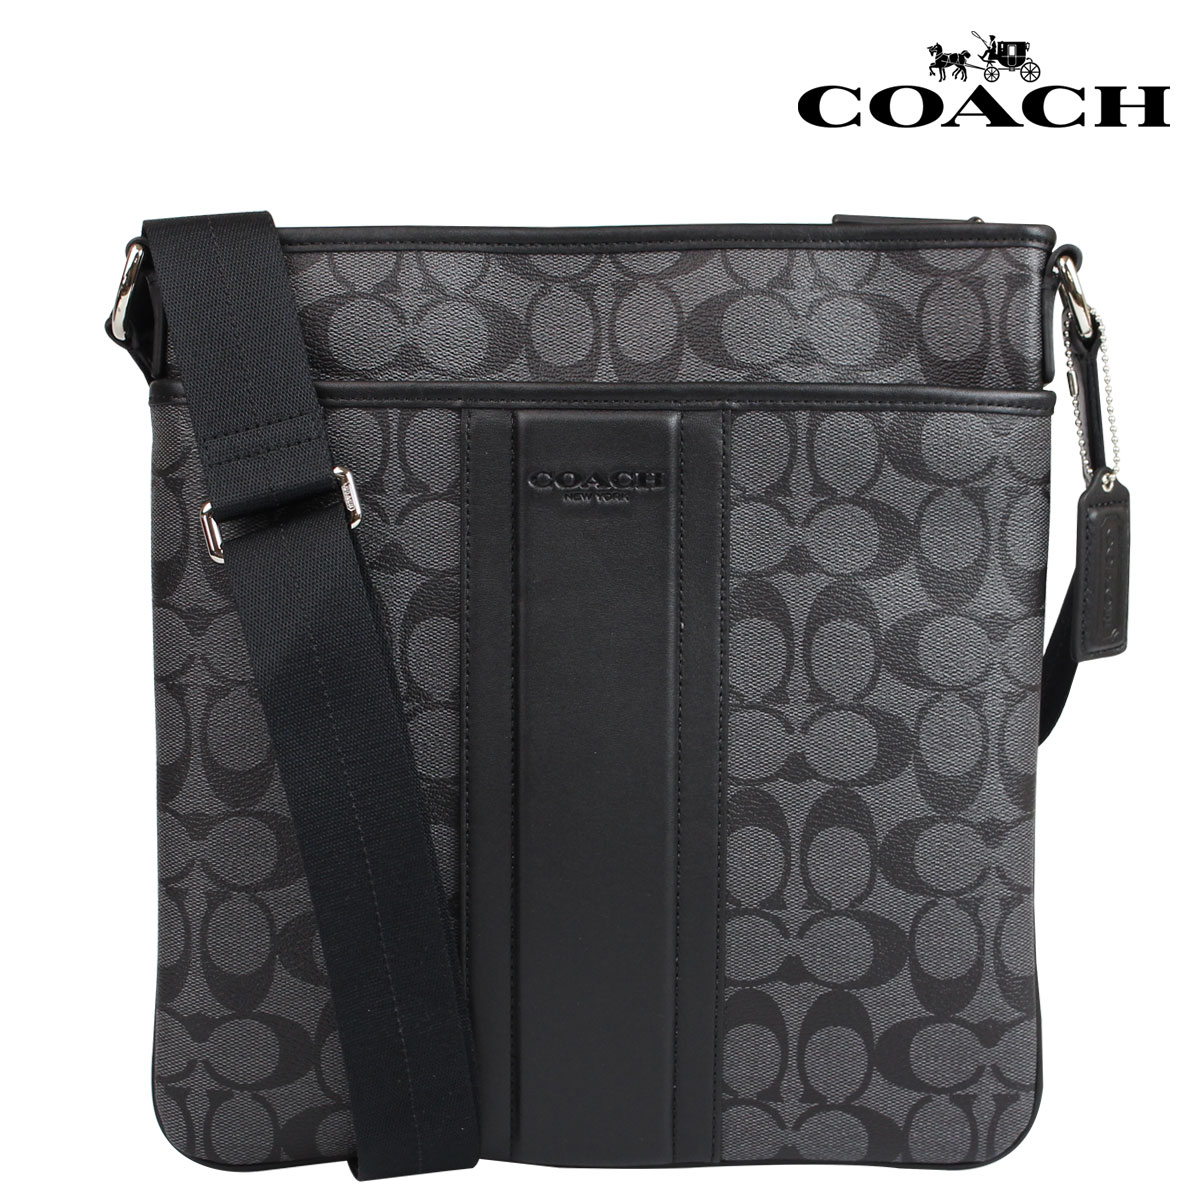 6d70d5df65d6 ALLSPORTS  Coach COACH men s Messenger bag shoulder bag F71947 Charcoal  Black Heritage stripe